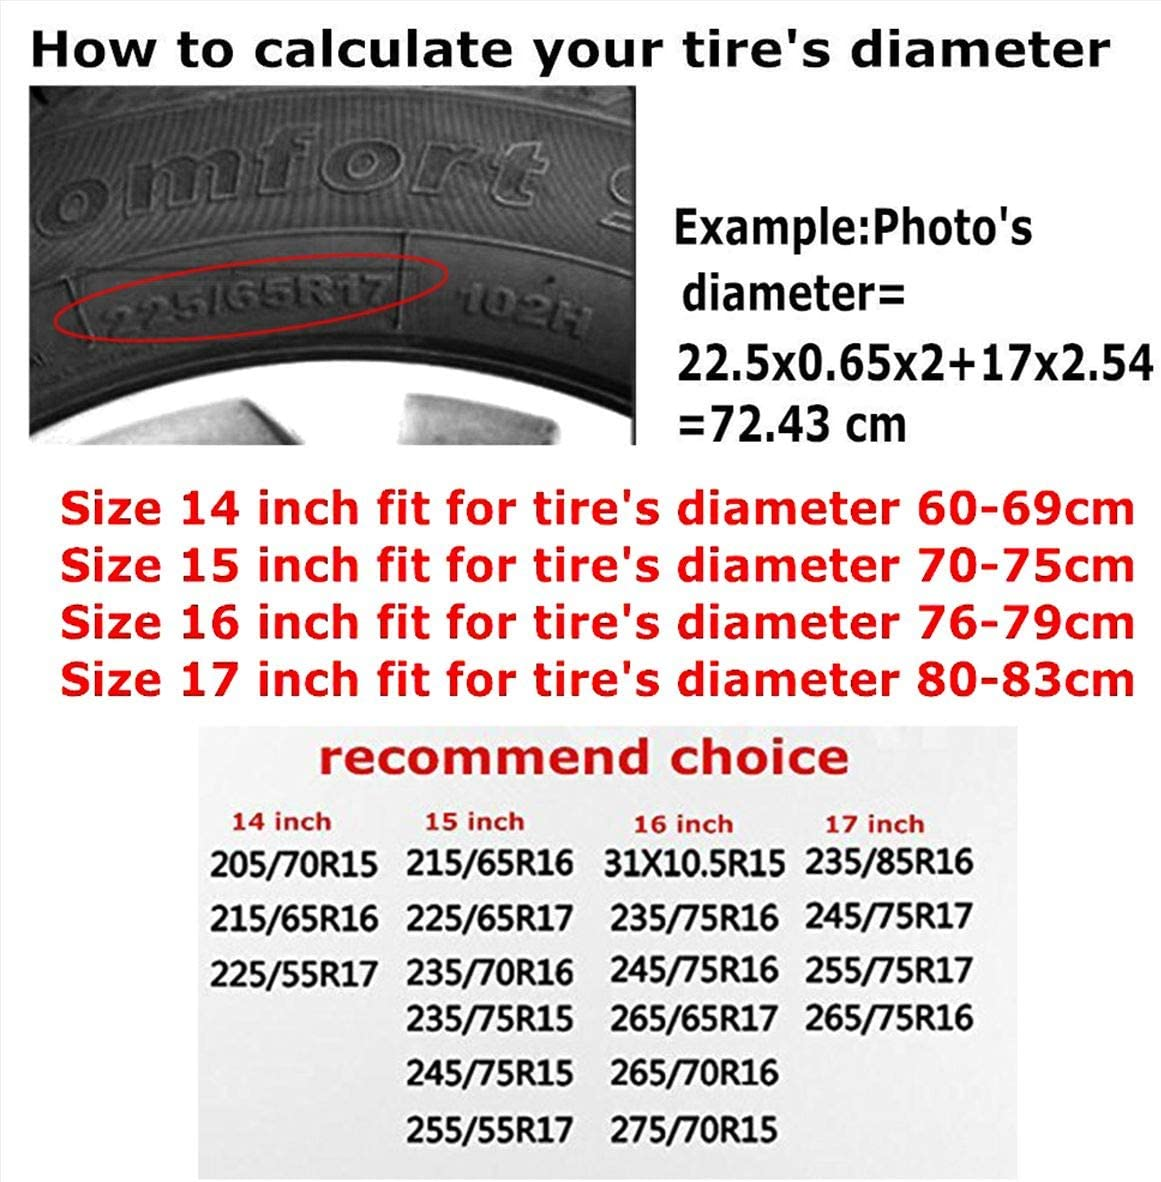 Trailer NHSJ Weatherproof Tire Protectors Spare Tire Cover Universal Fit for Jeep RV SUV Truck and Many Vehicle